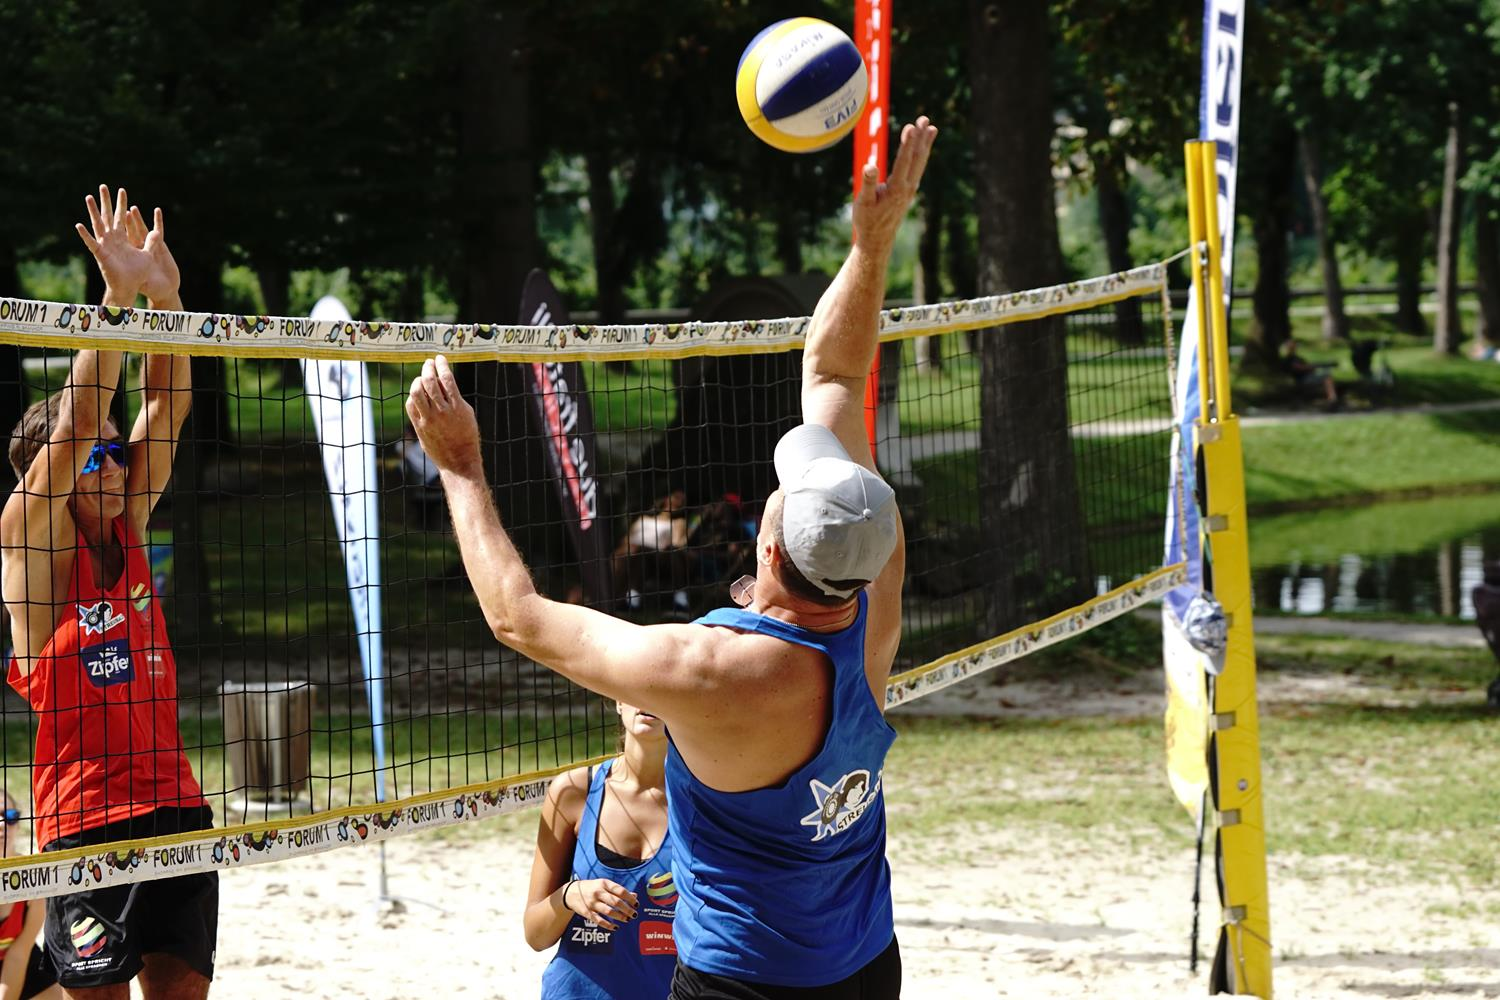 20160904_FMT_SSAS_ Vollyball_KJ (50) (Copy)